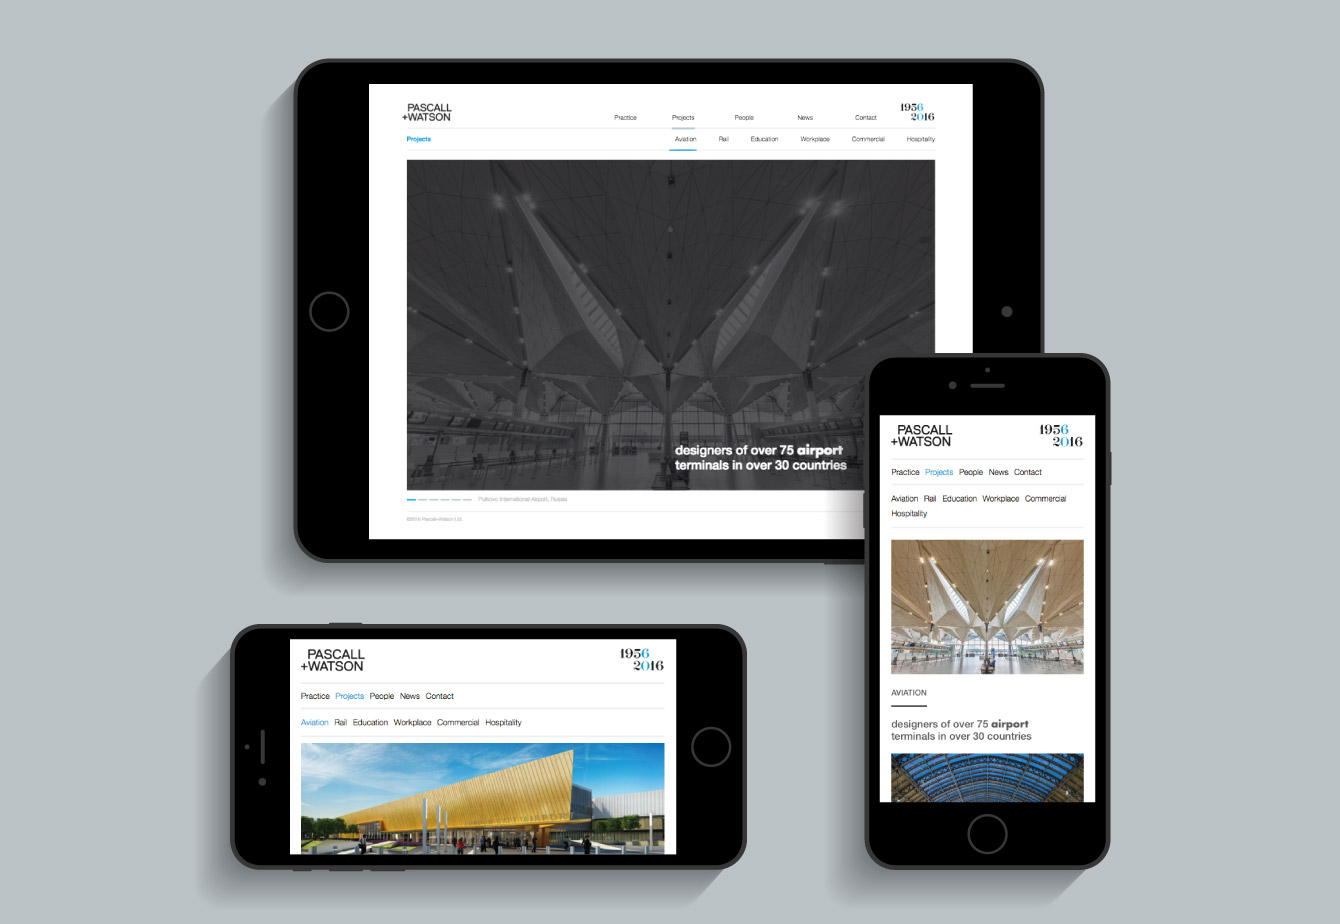 The Pascall+Watson website on an iPhone and iPad - desktop